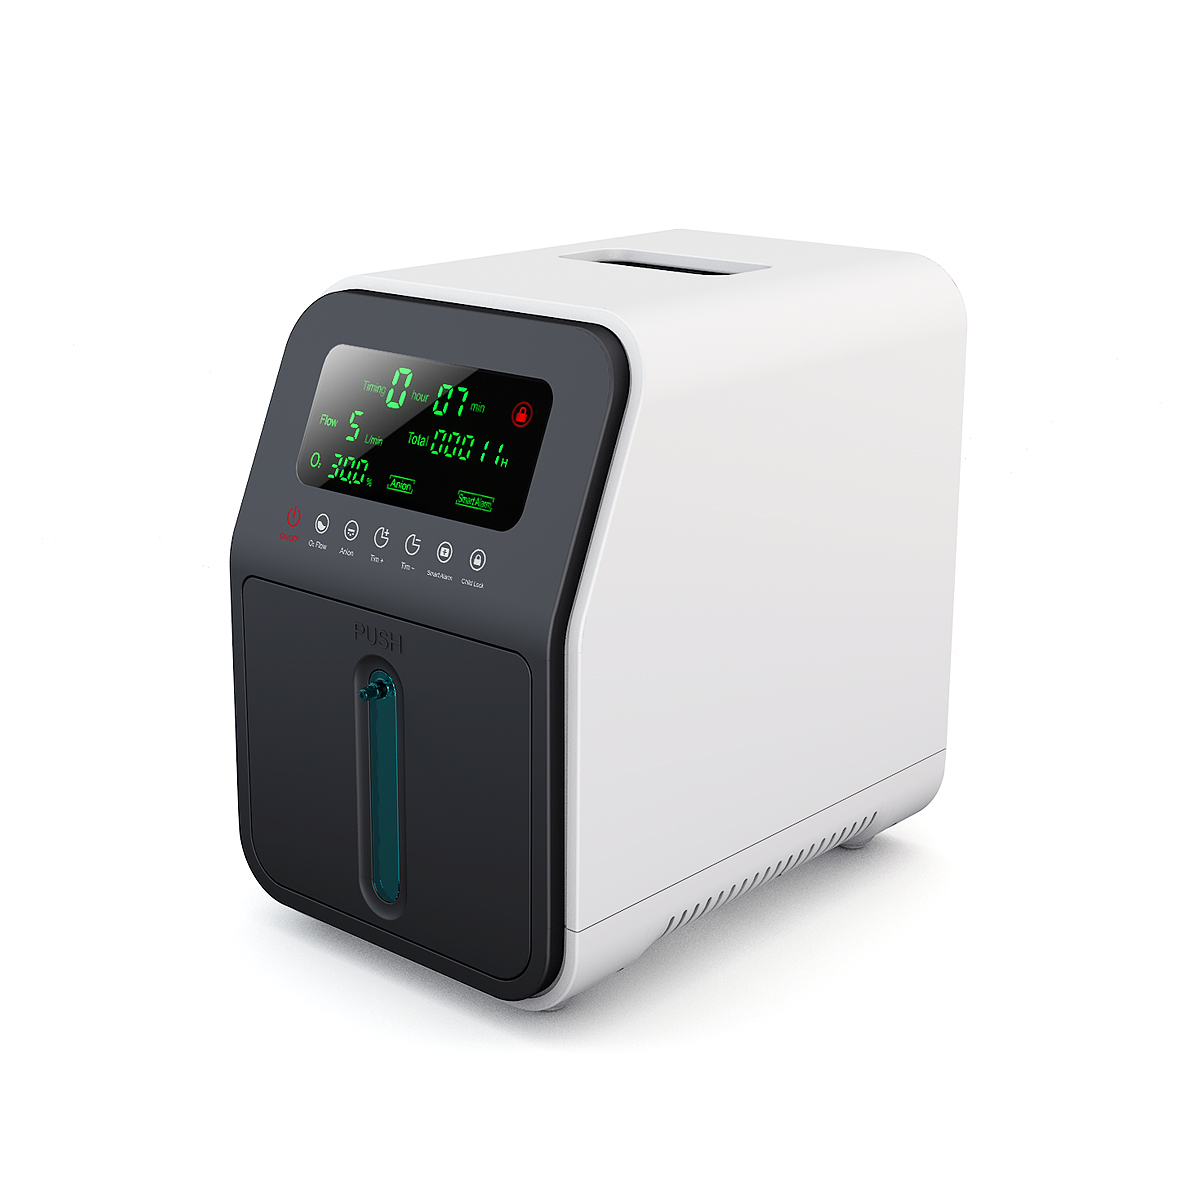 popular products 2020 Oxygen Therapy Machine portable oxygen concentrator - KingCare | KingCare.net